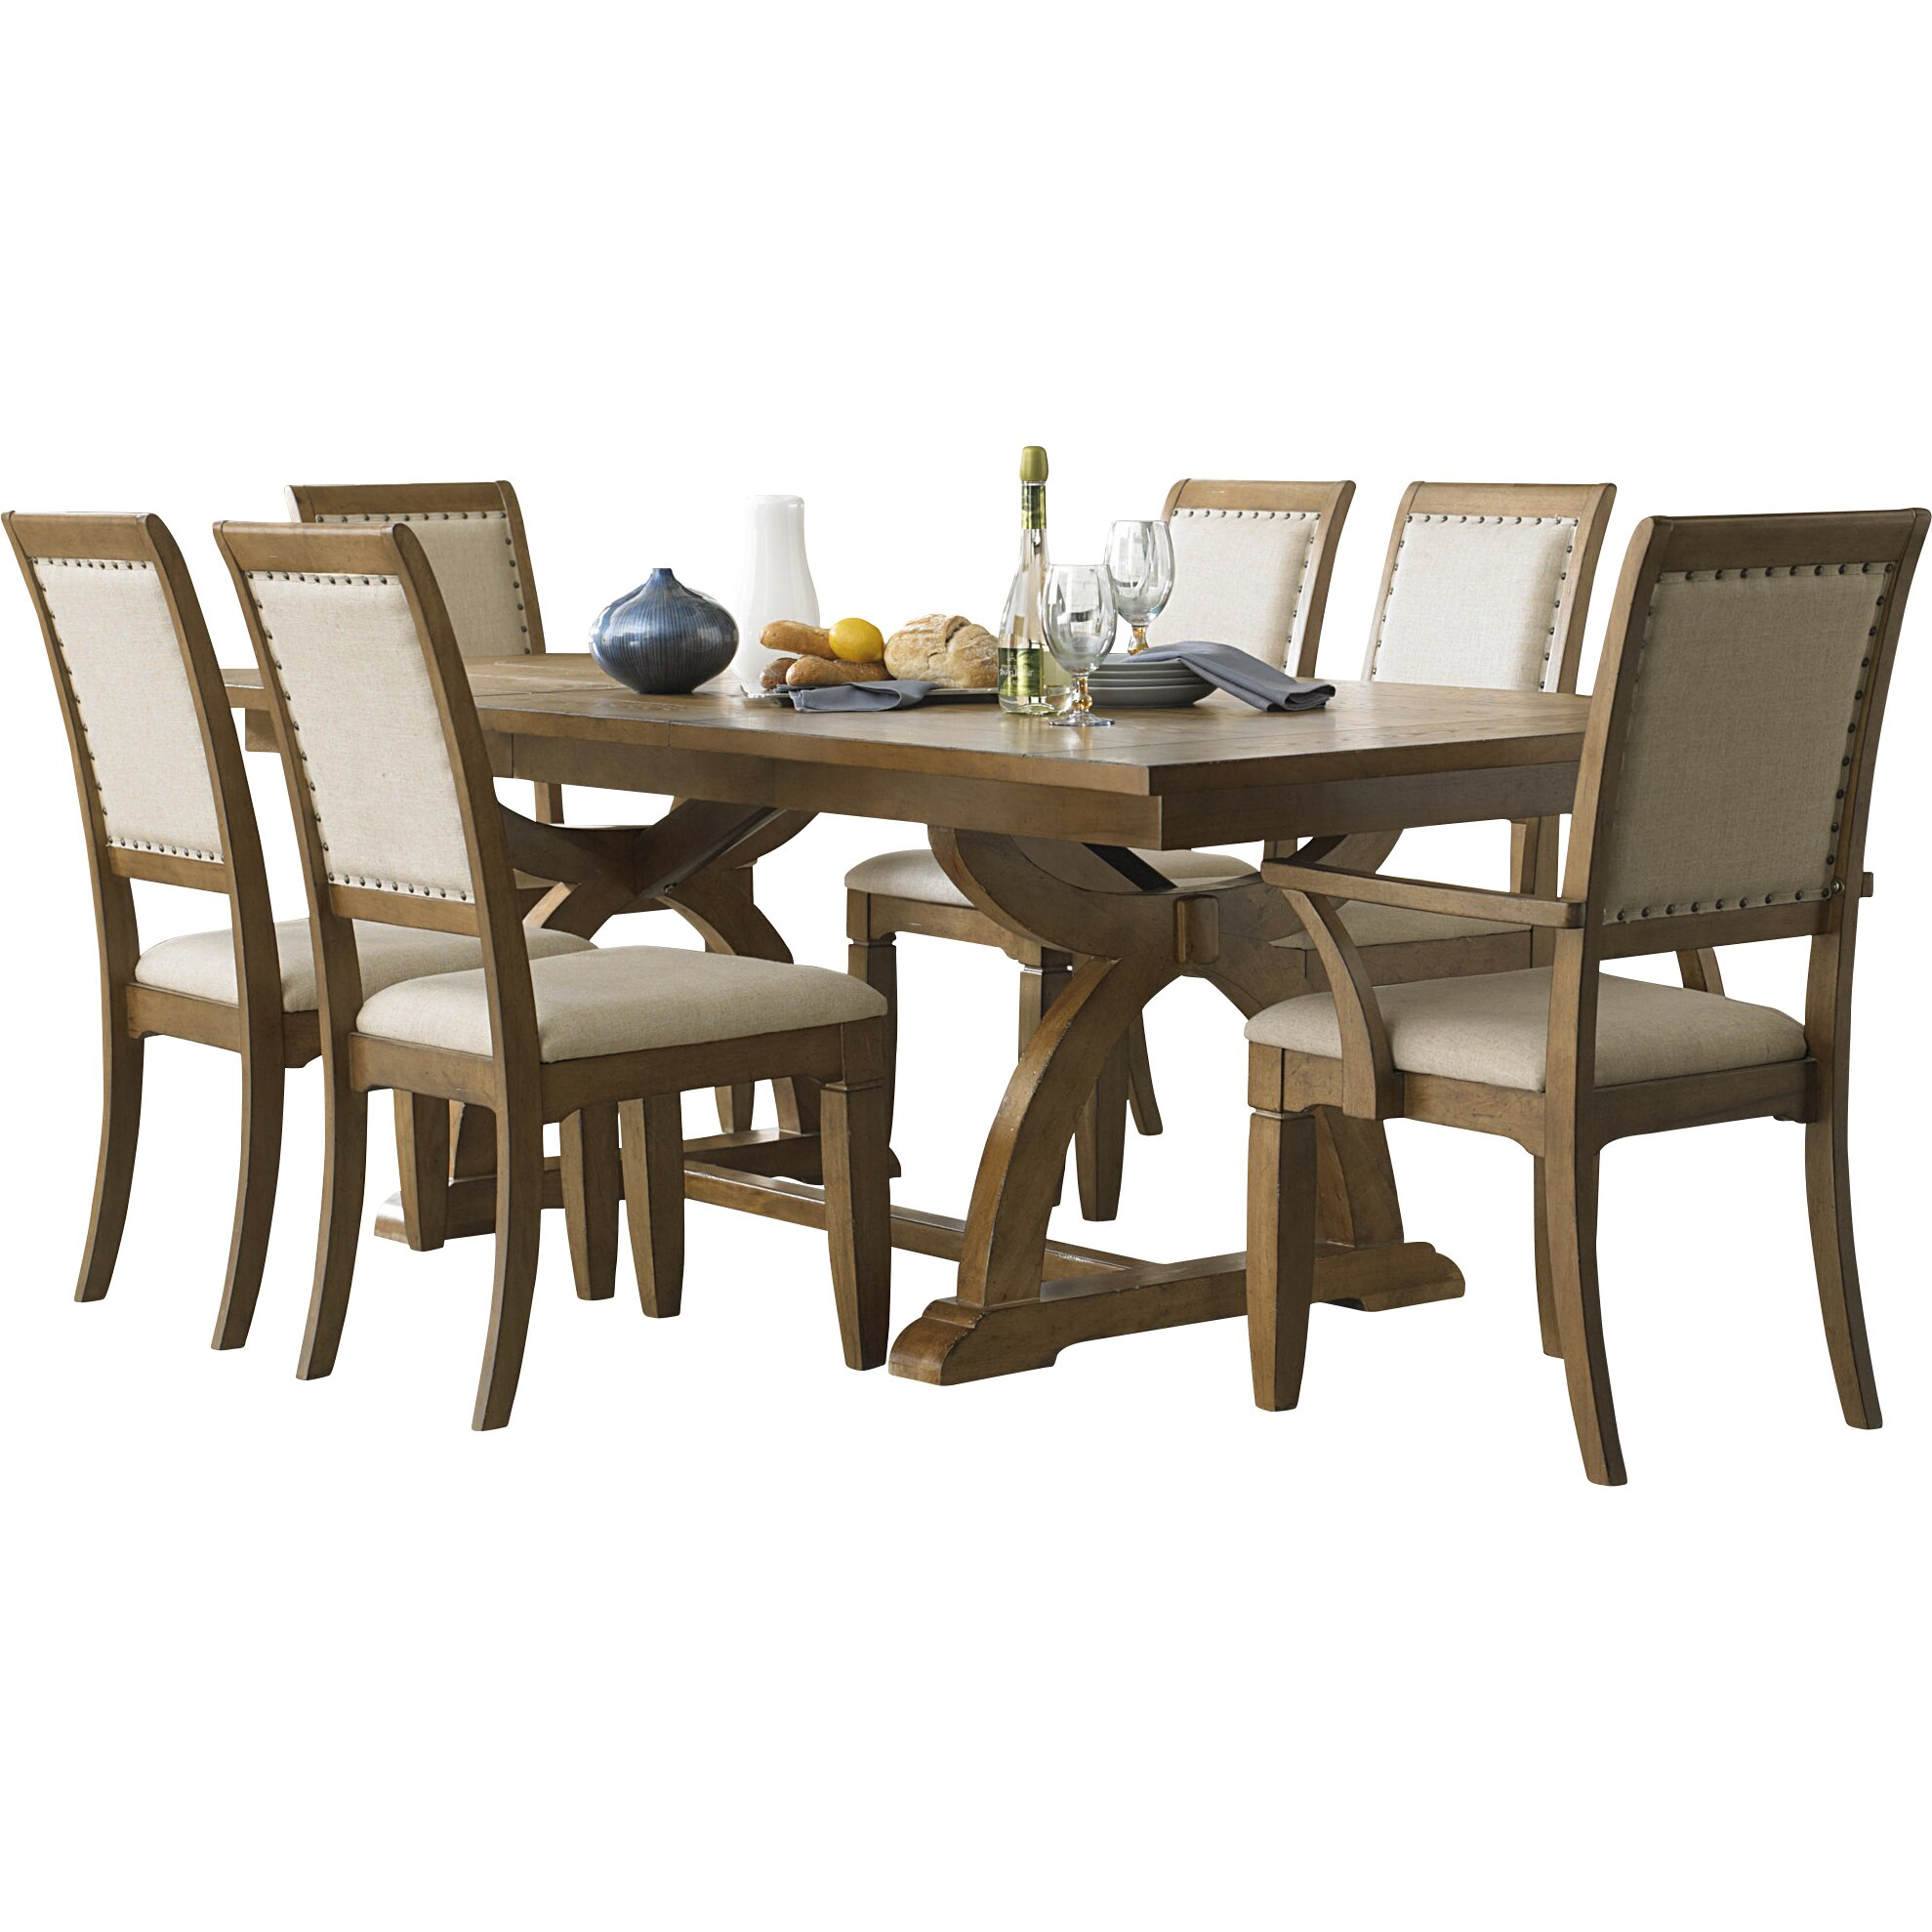 Lark manor ema 6 piece dining set reviews wayfair for Dining room sets 6 piece